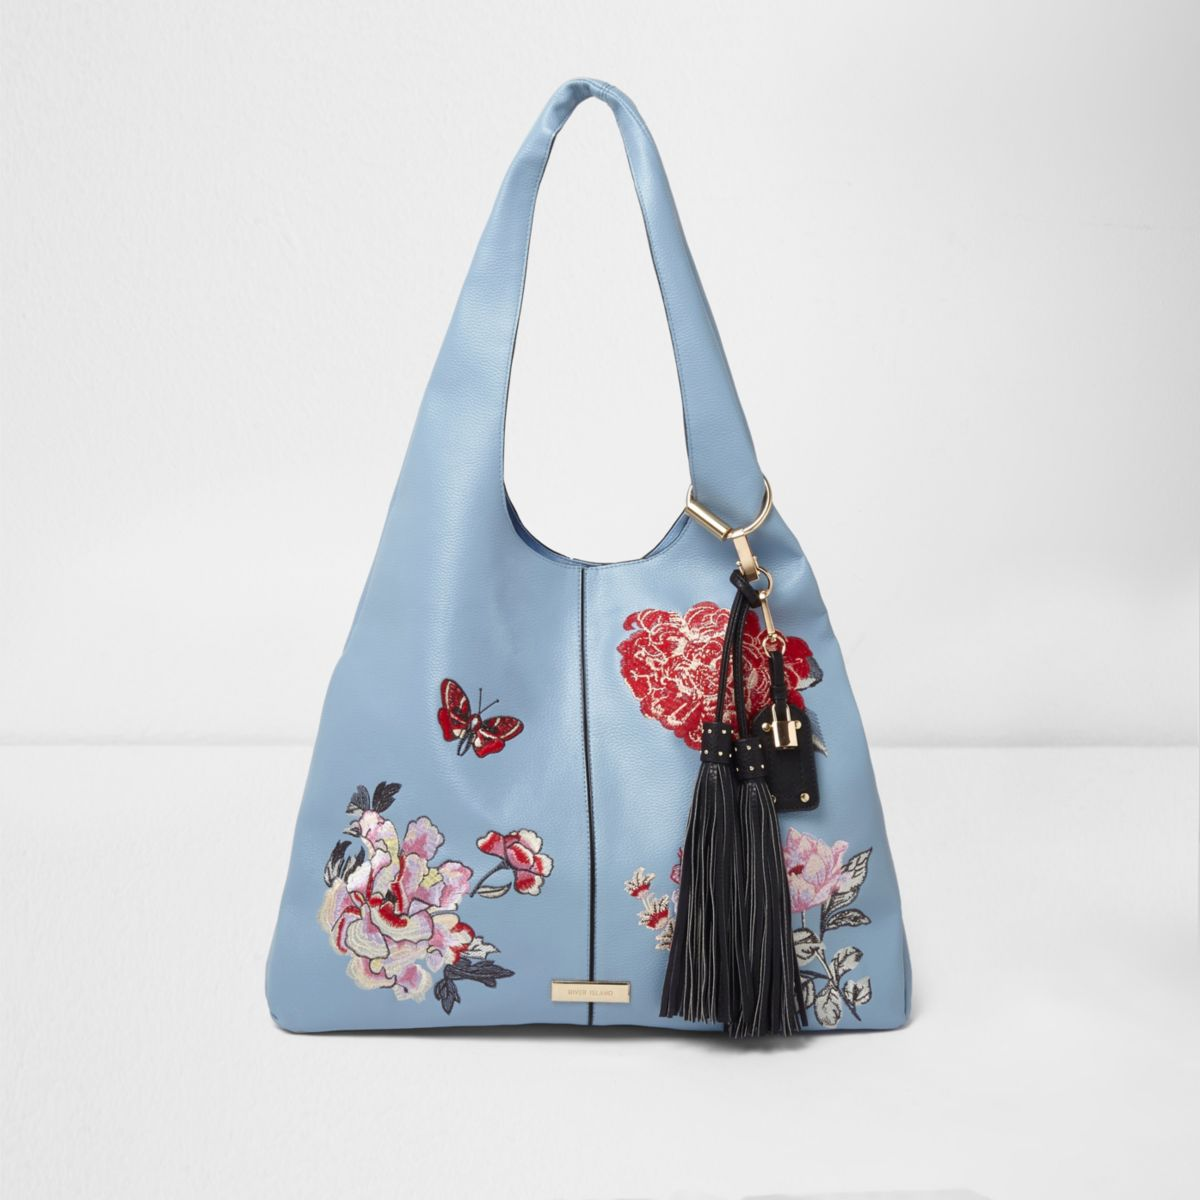 Blue Floral Embroidered Oversized Slouch Bag - Bags U0026 Purses - Sale - Women